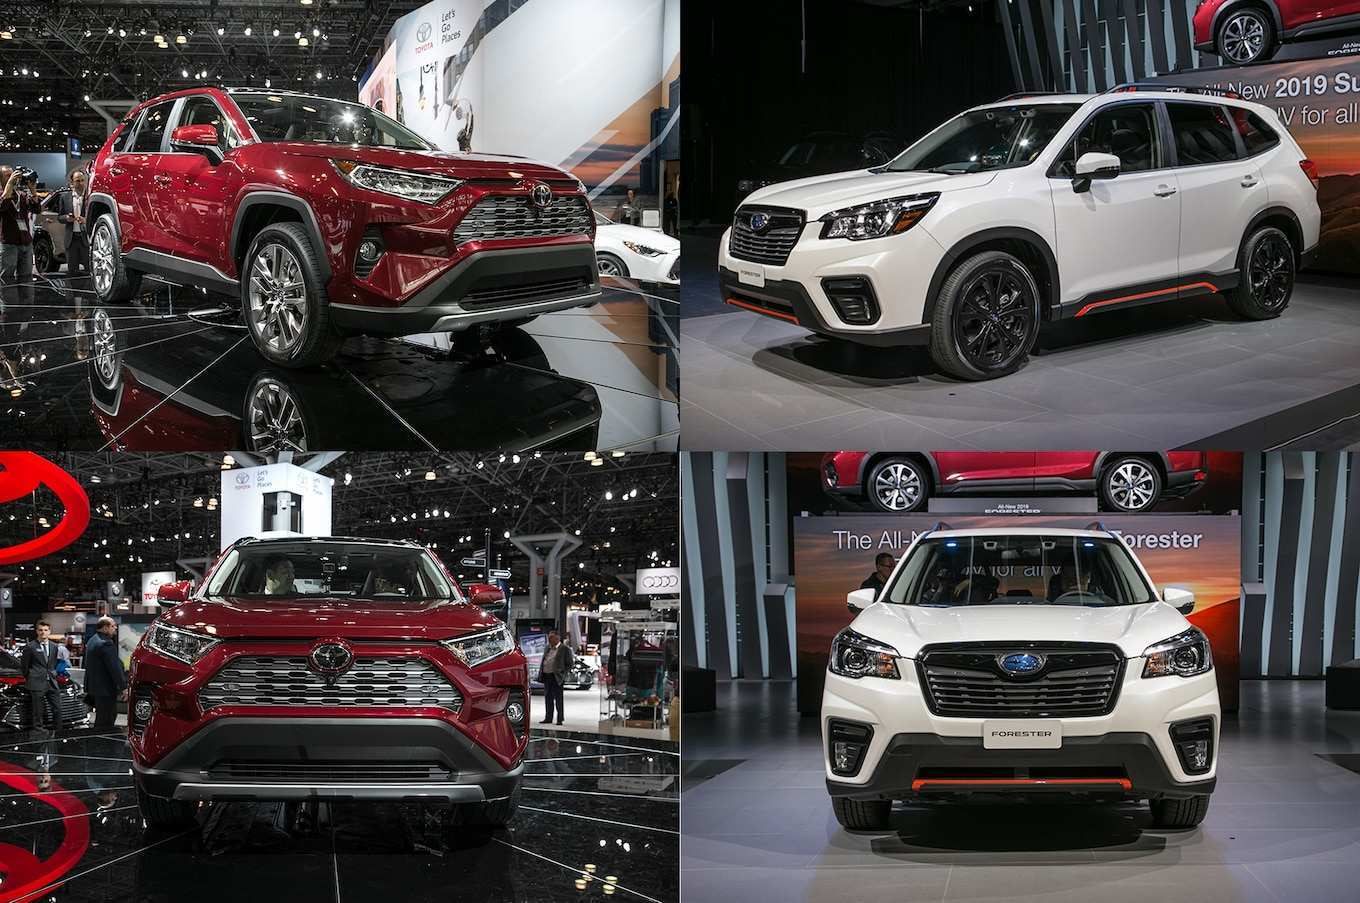 56 Gallery of Subaru Forester 2019 Ground Clearance Overview by Subaru Forester 2019 Ground Clearance